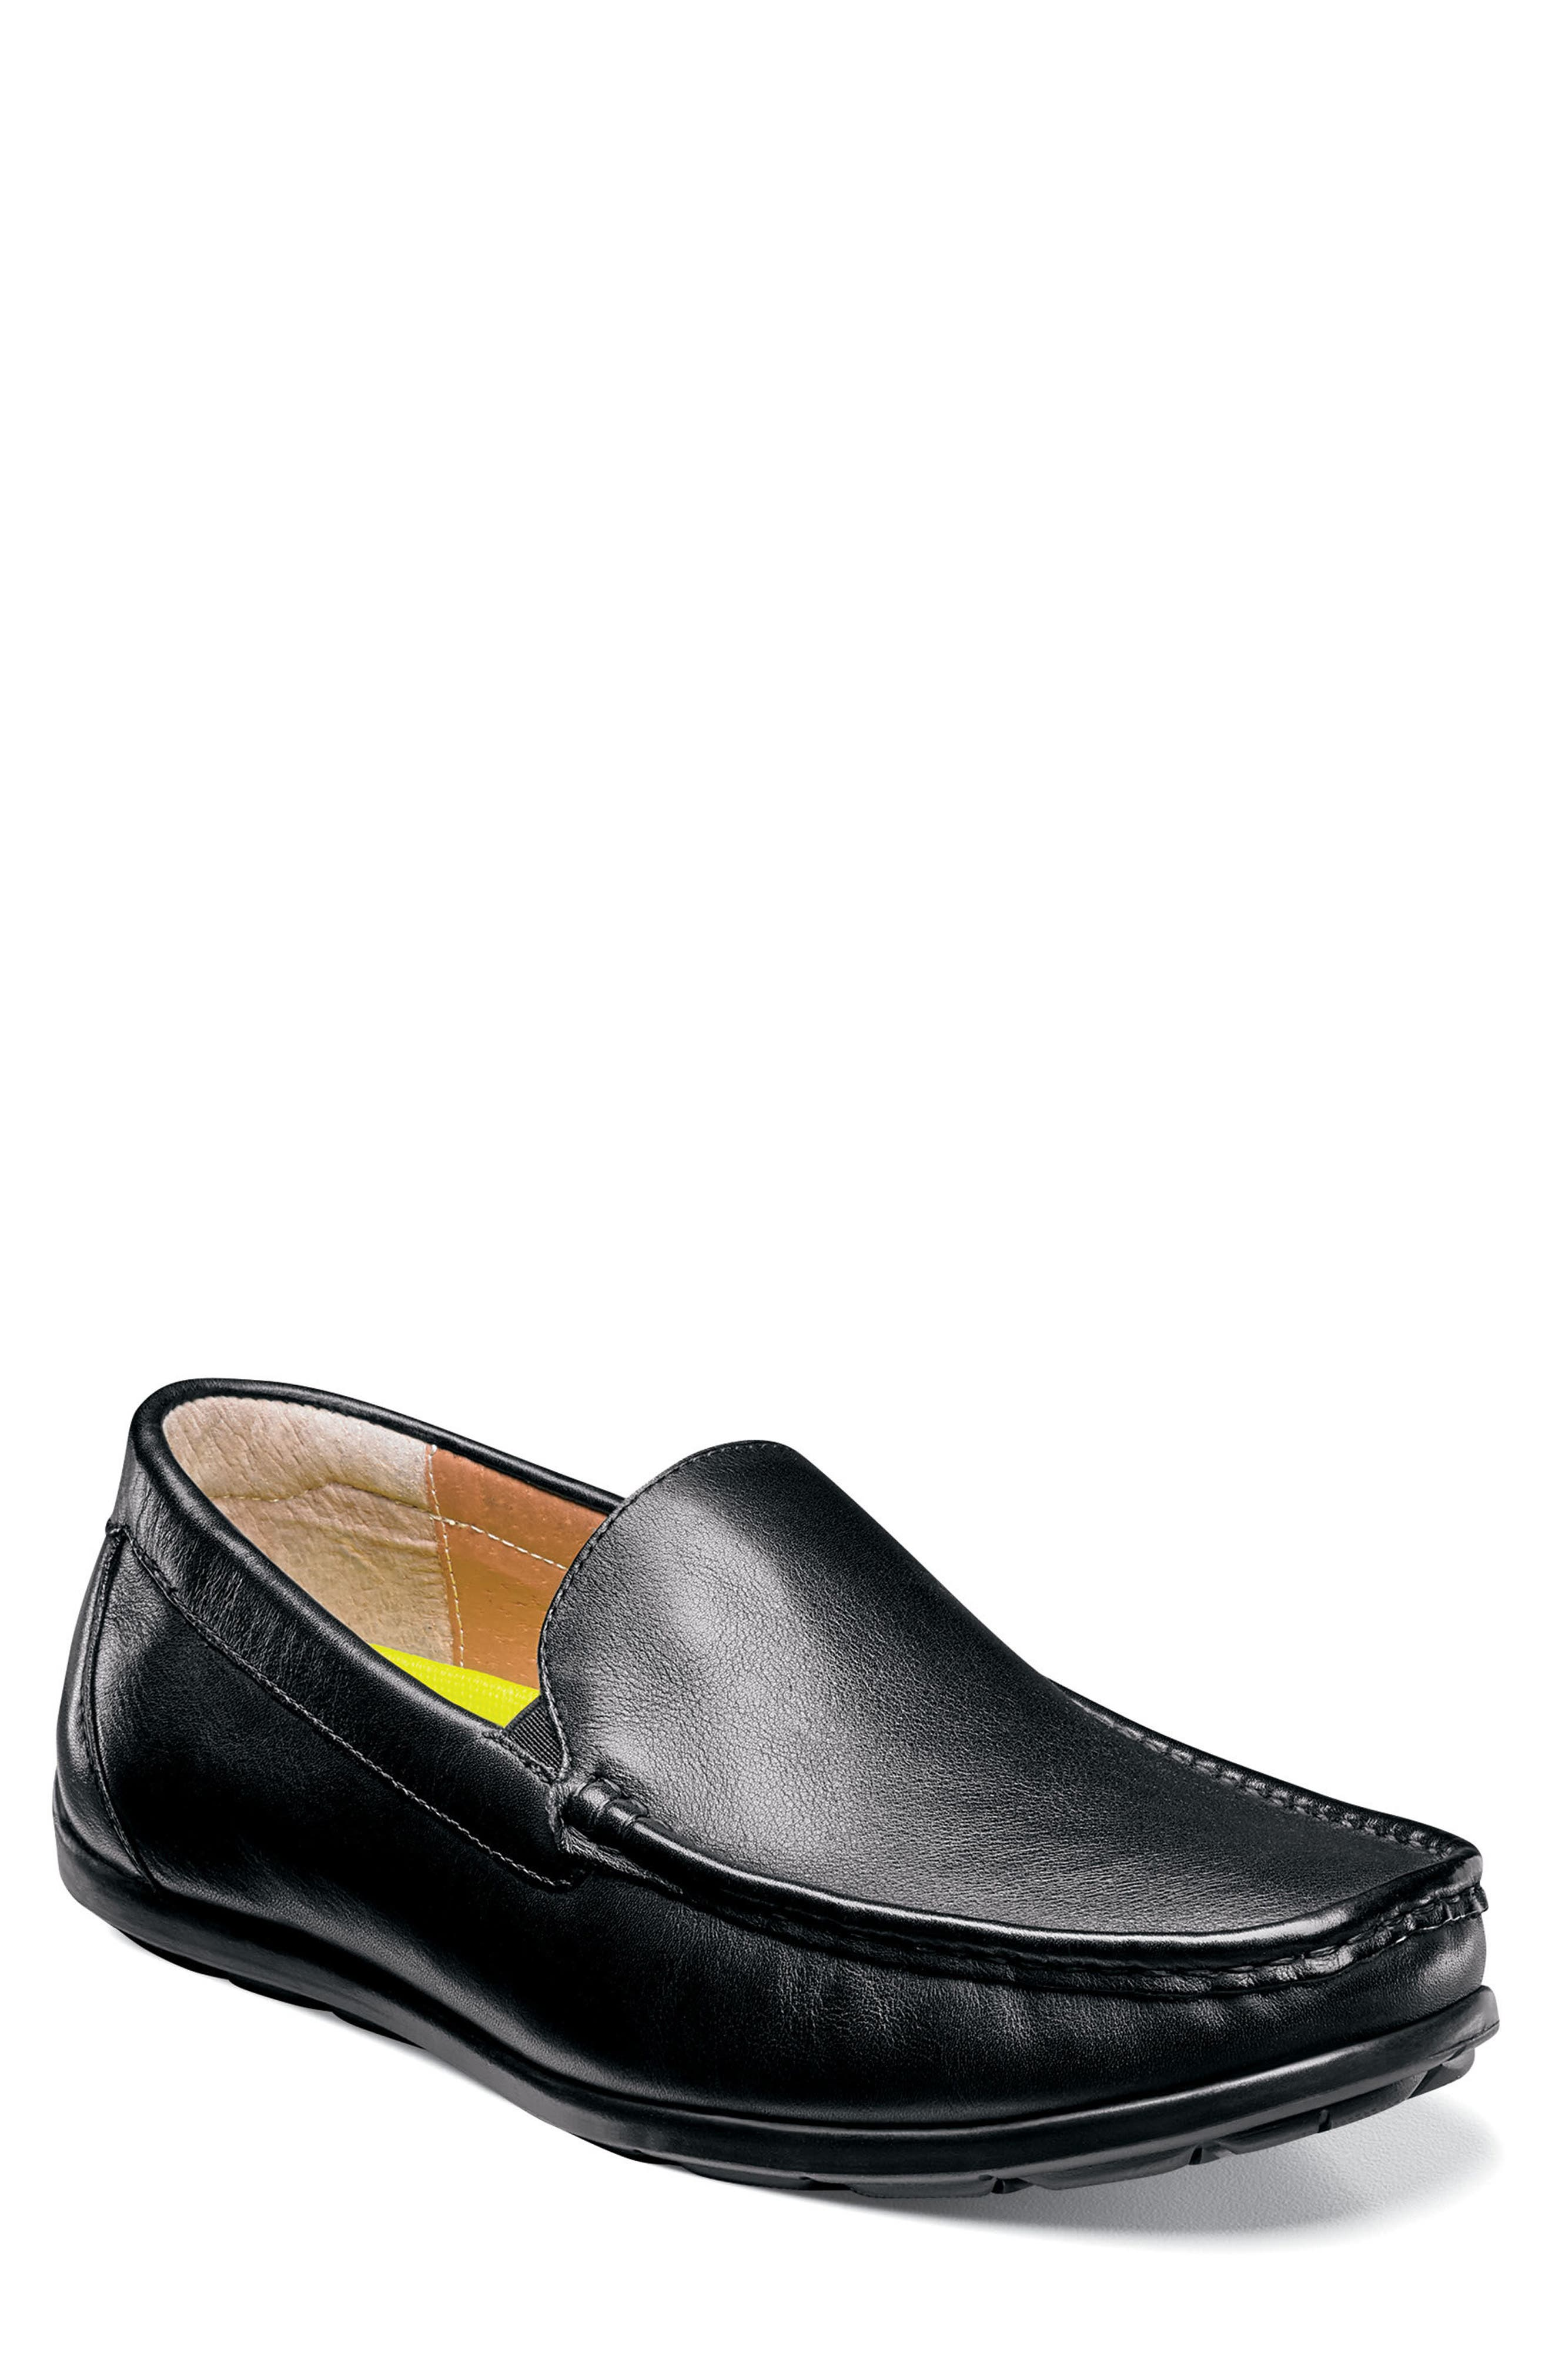 Comfortech Draft Loafer,                         Main,                         color, 001